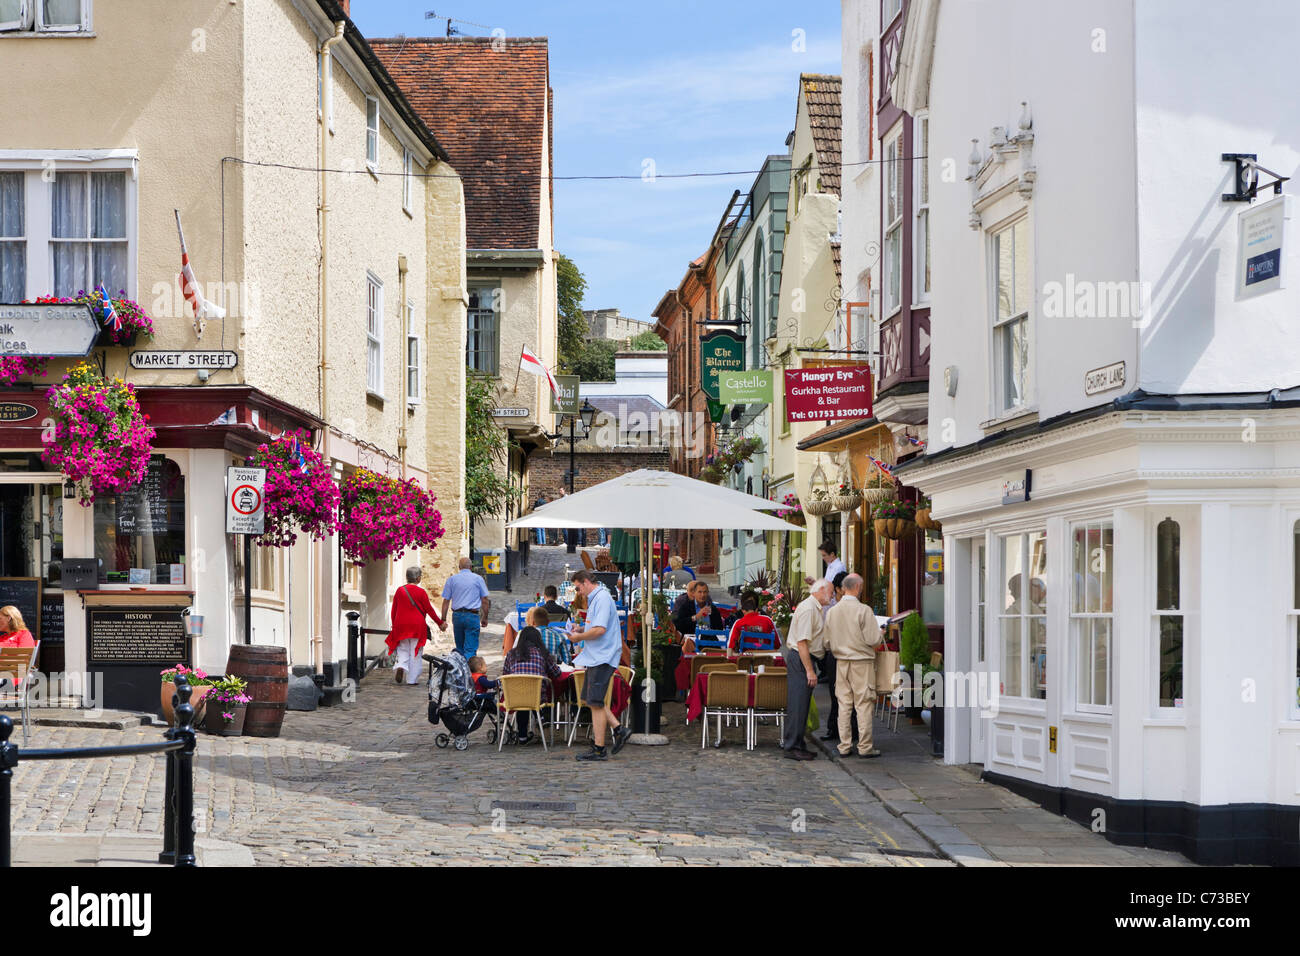 Bars and restaurants in the town centre, Windsor, Berkshire, England, UK - Stock Image